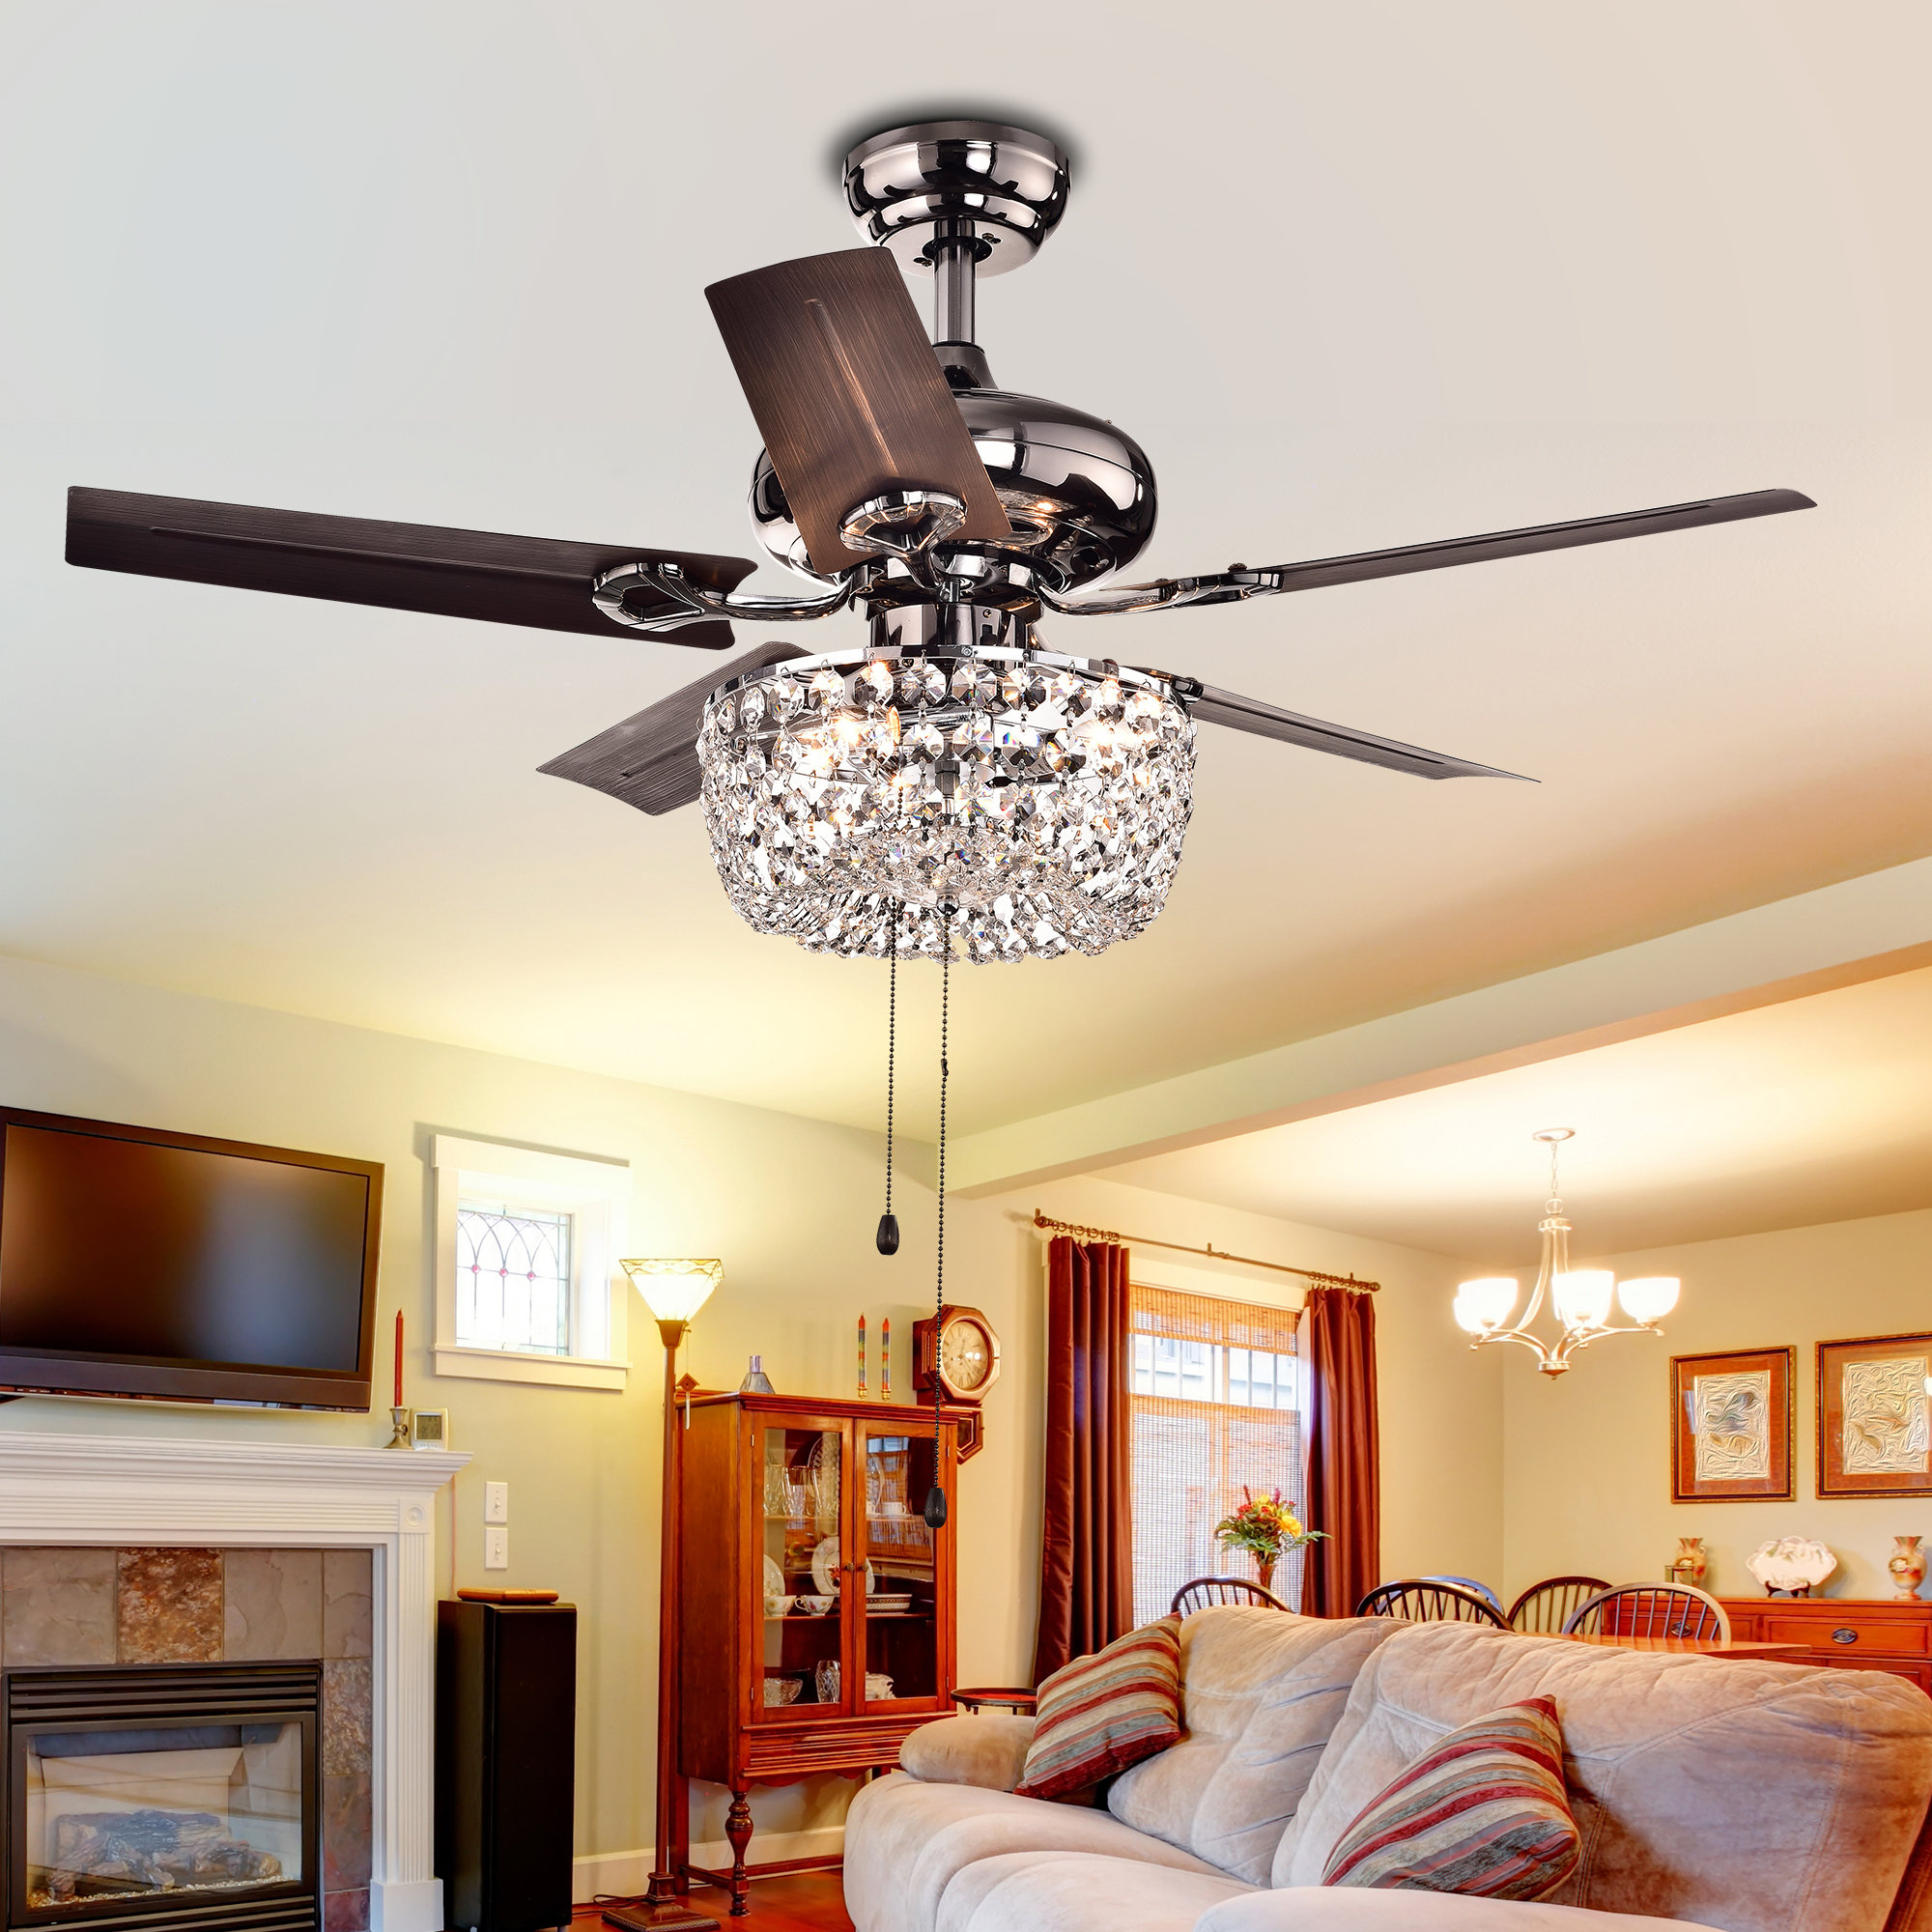 """43"""" Aslan 5 Blade Ceiling Fan, Light Kit Included Within Trendy Ravello 5 Blade Led Ceiling Fans (View 19 of 20)"""